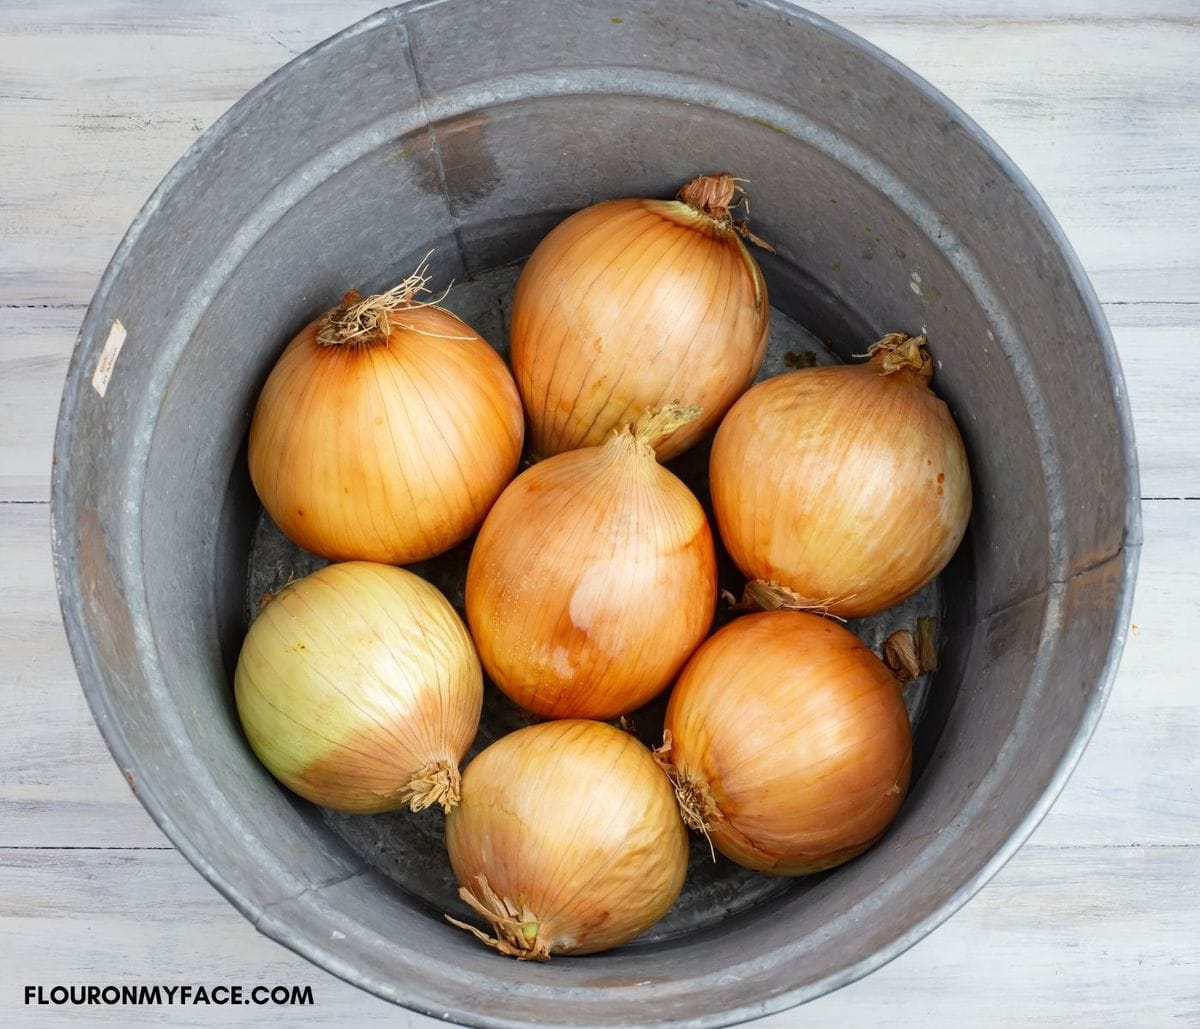 Fresh large white onions in a galvanized bucket.